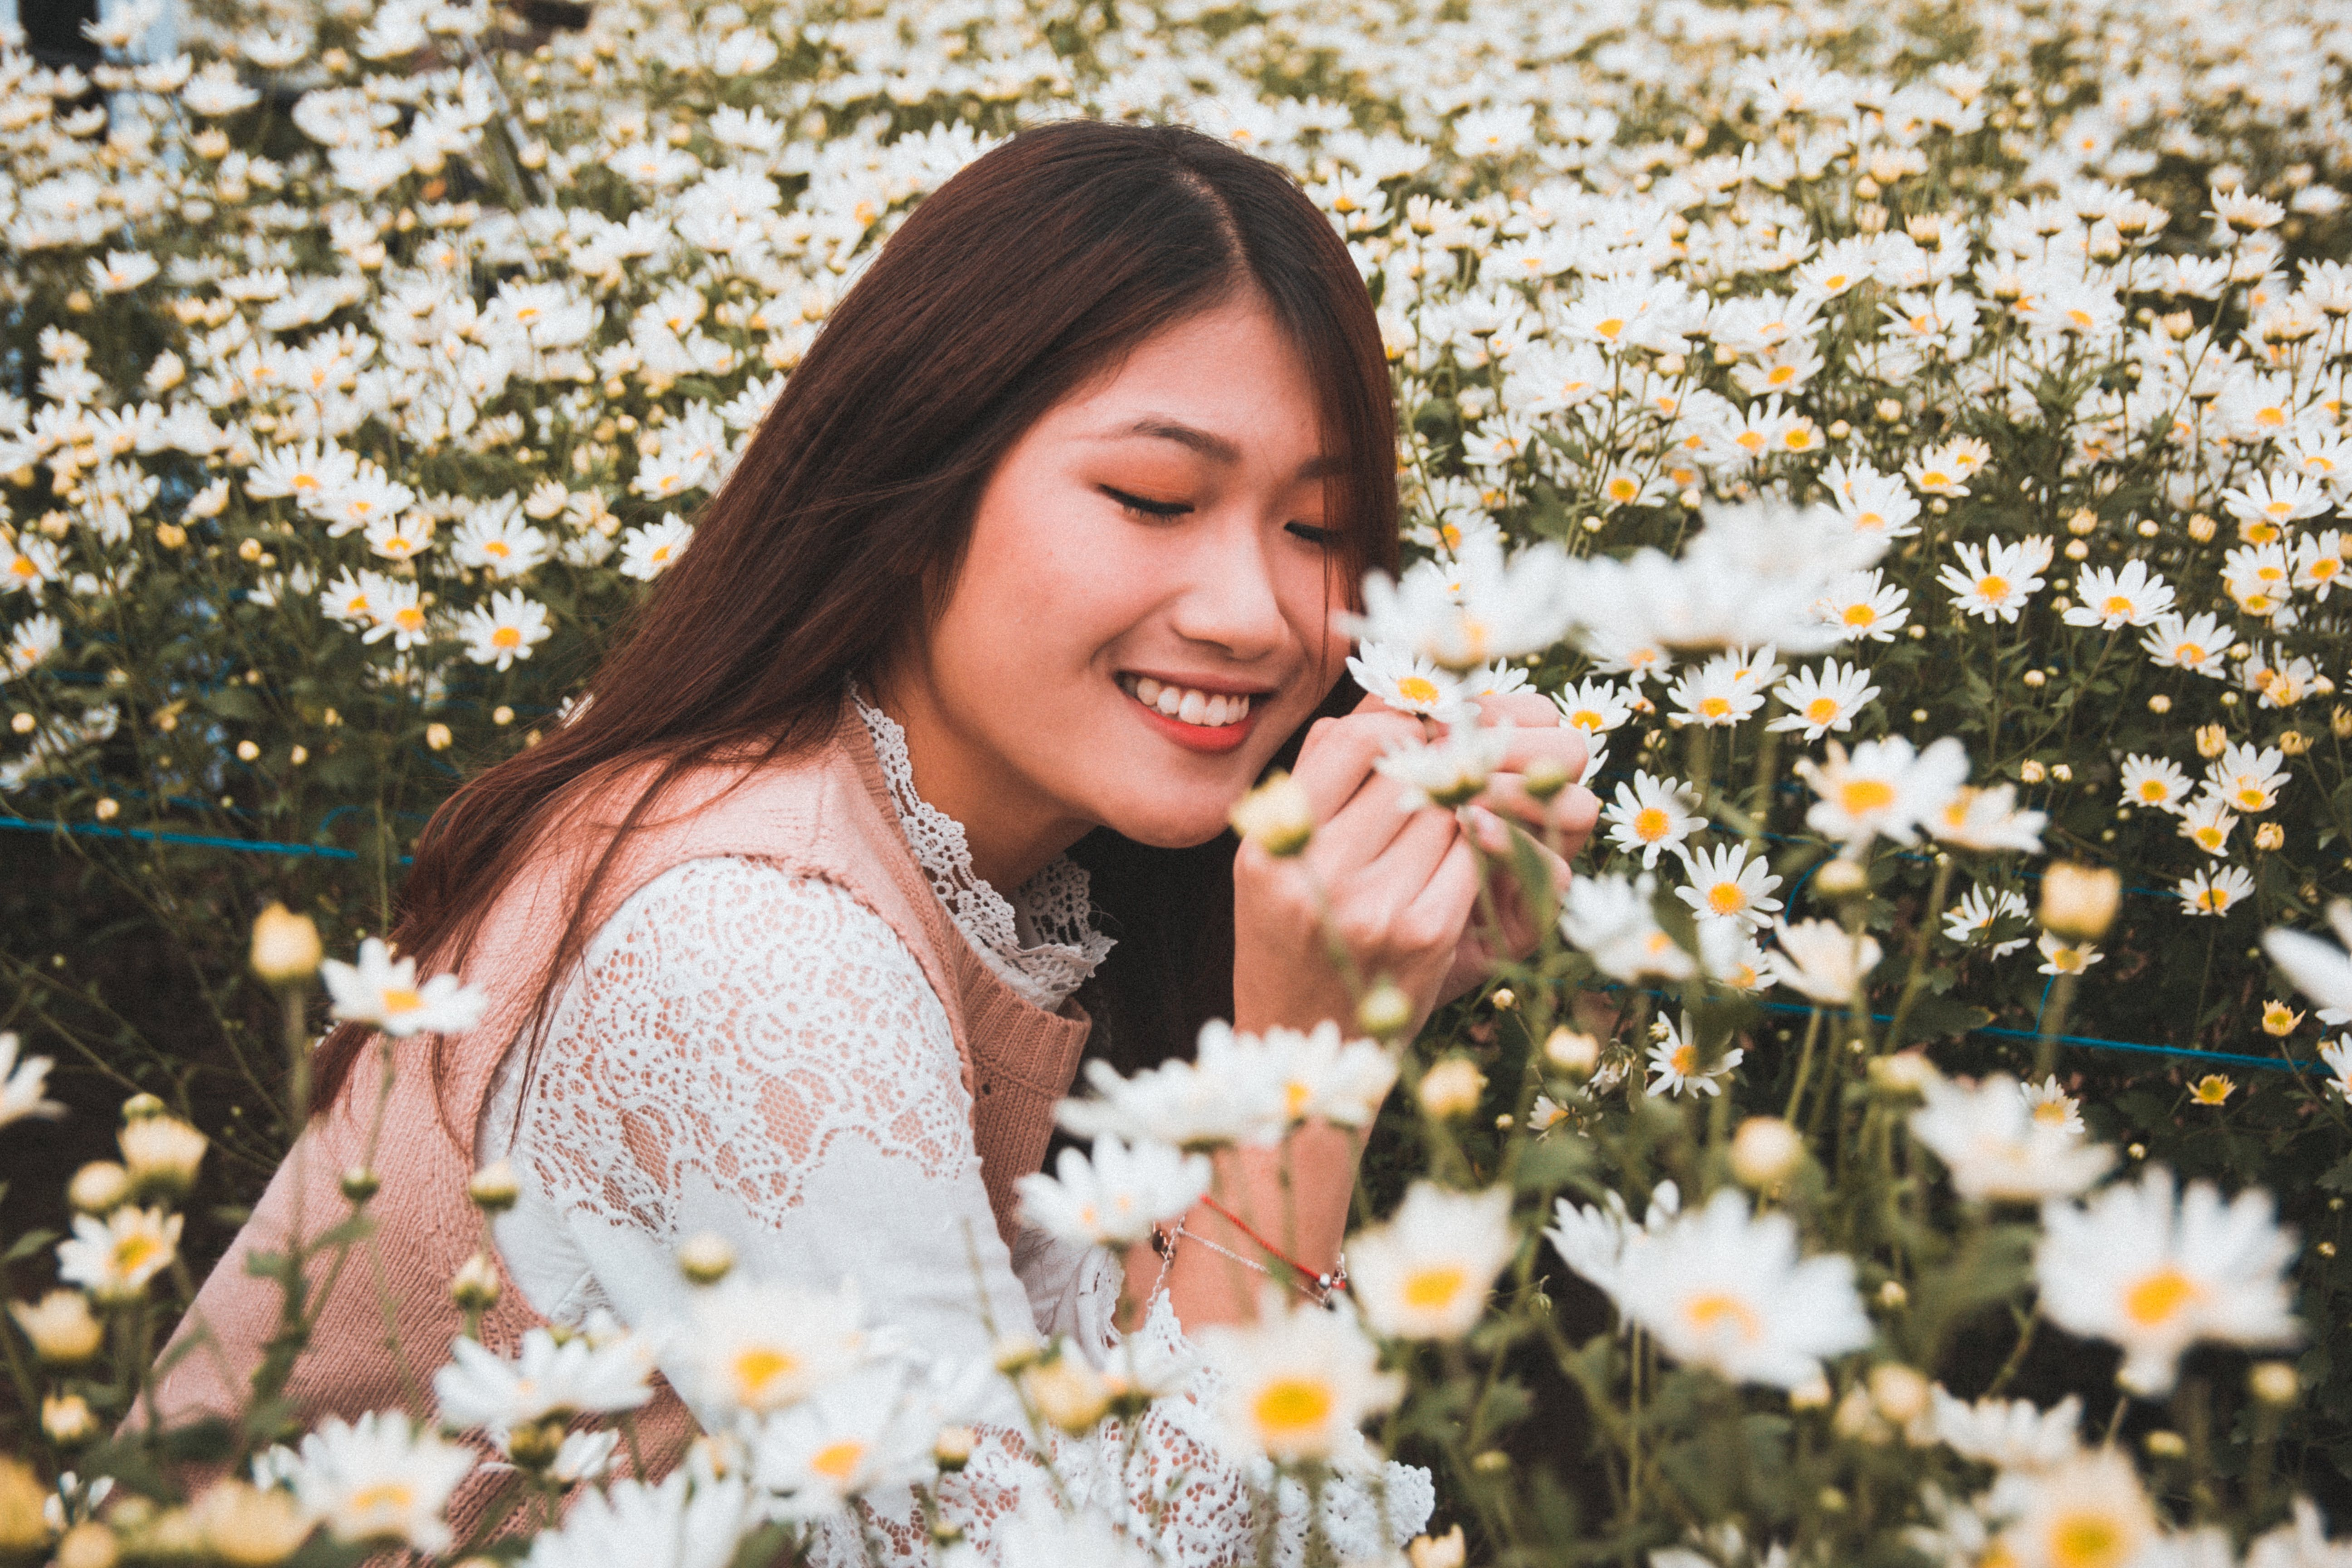 Photo of Woman Smiling Surrounded by Daisy Flower Field